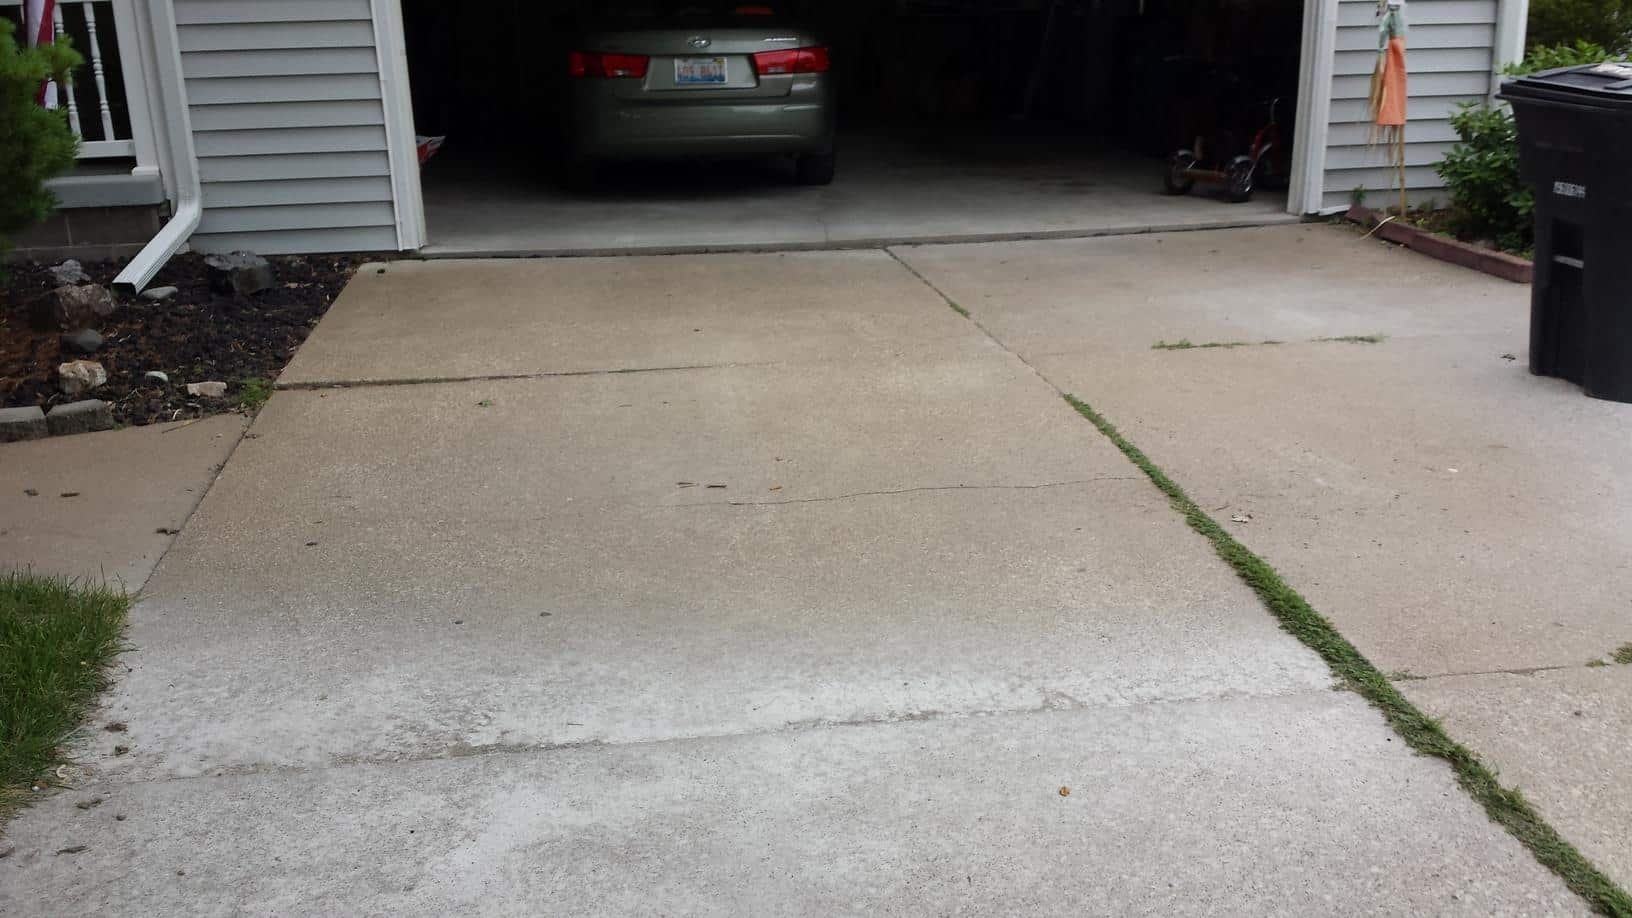 The cracking driveway slabs were starting to pull away from each other and gross grass in between.